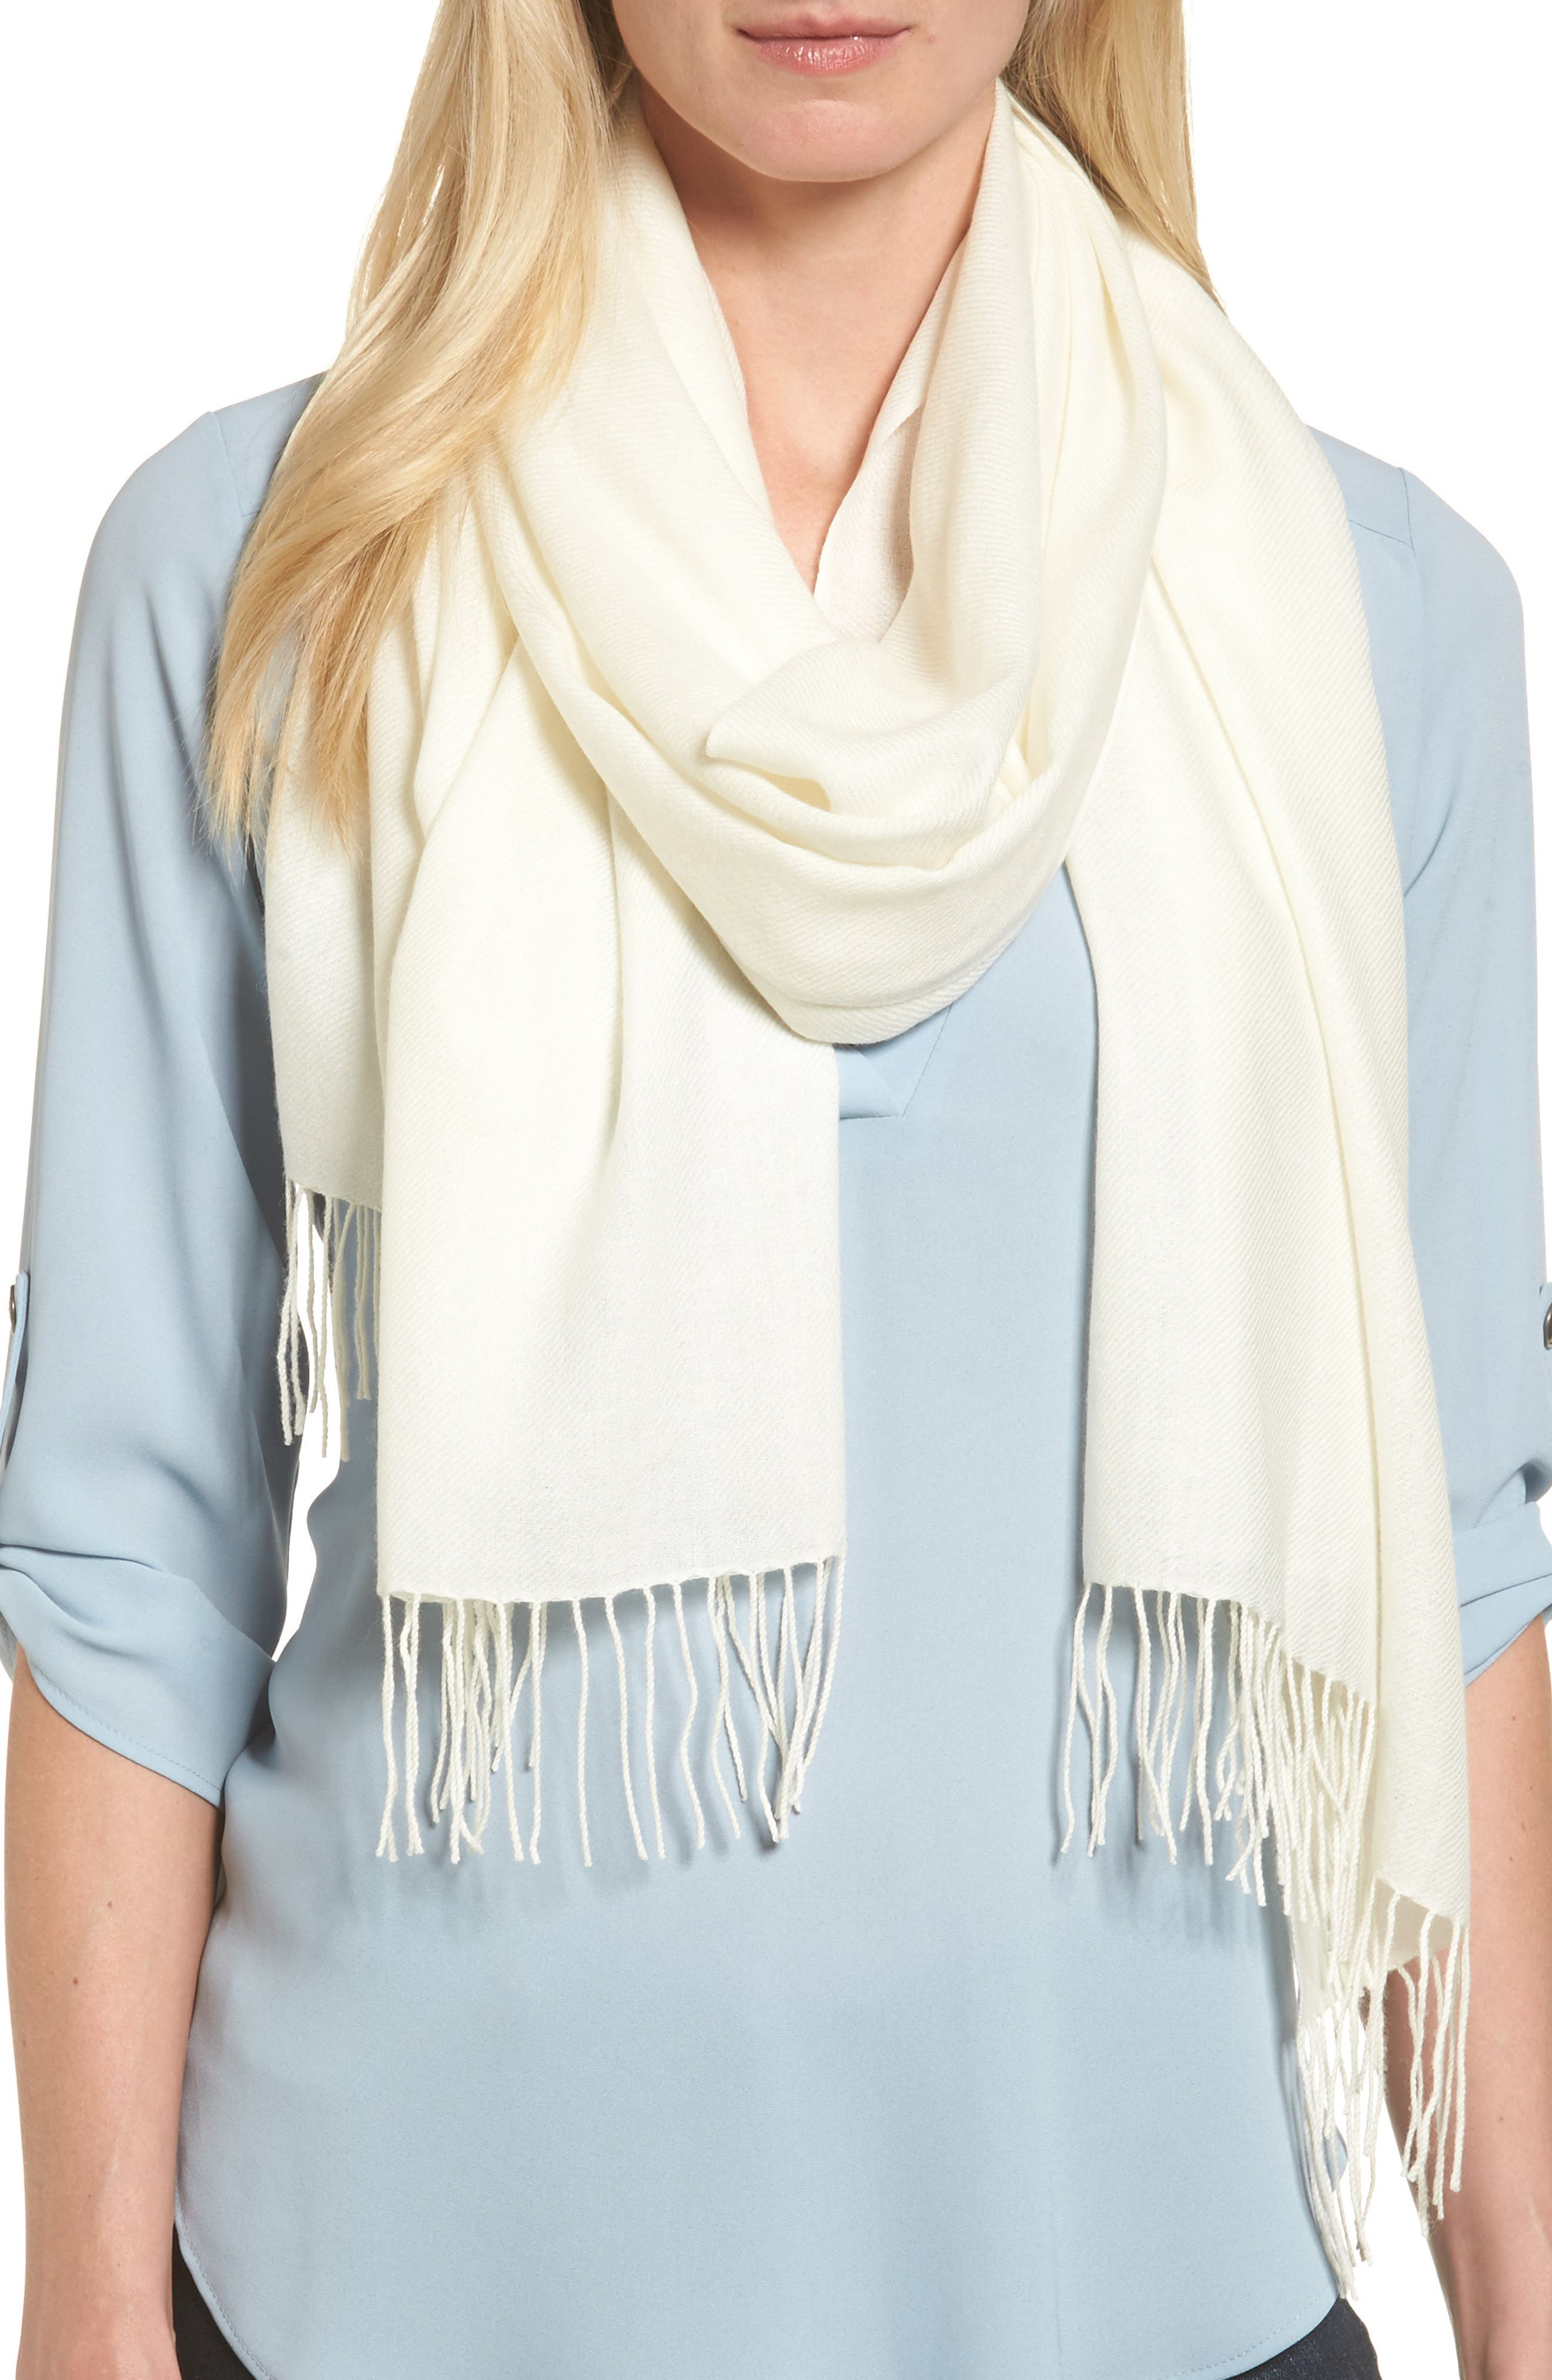 Alternate Image 1 Selected - Nordstrom Tissue Weight Wool & Cashmere Scarf